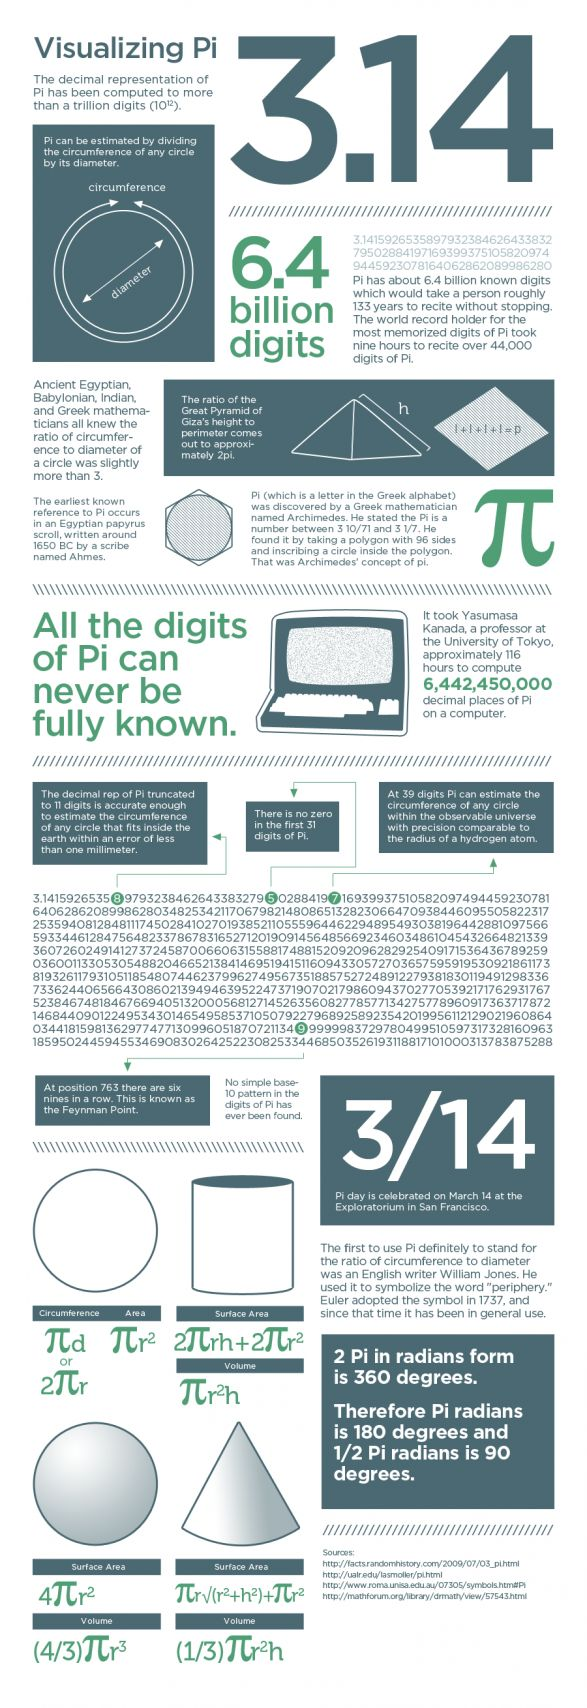 Pi: I like stuff like this, I just can't help but wonder if we have it all wrong. How can such an important number be irrational? Maybe our tiny pea human brains just didn't create the right number system or something. ~Bon